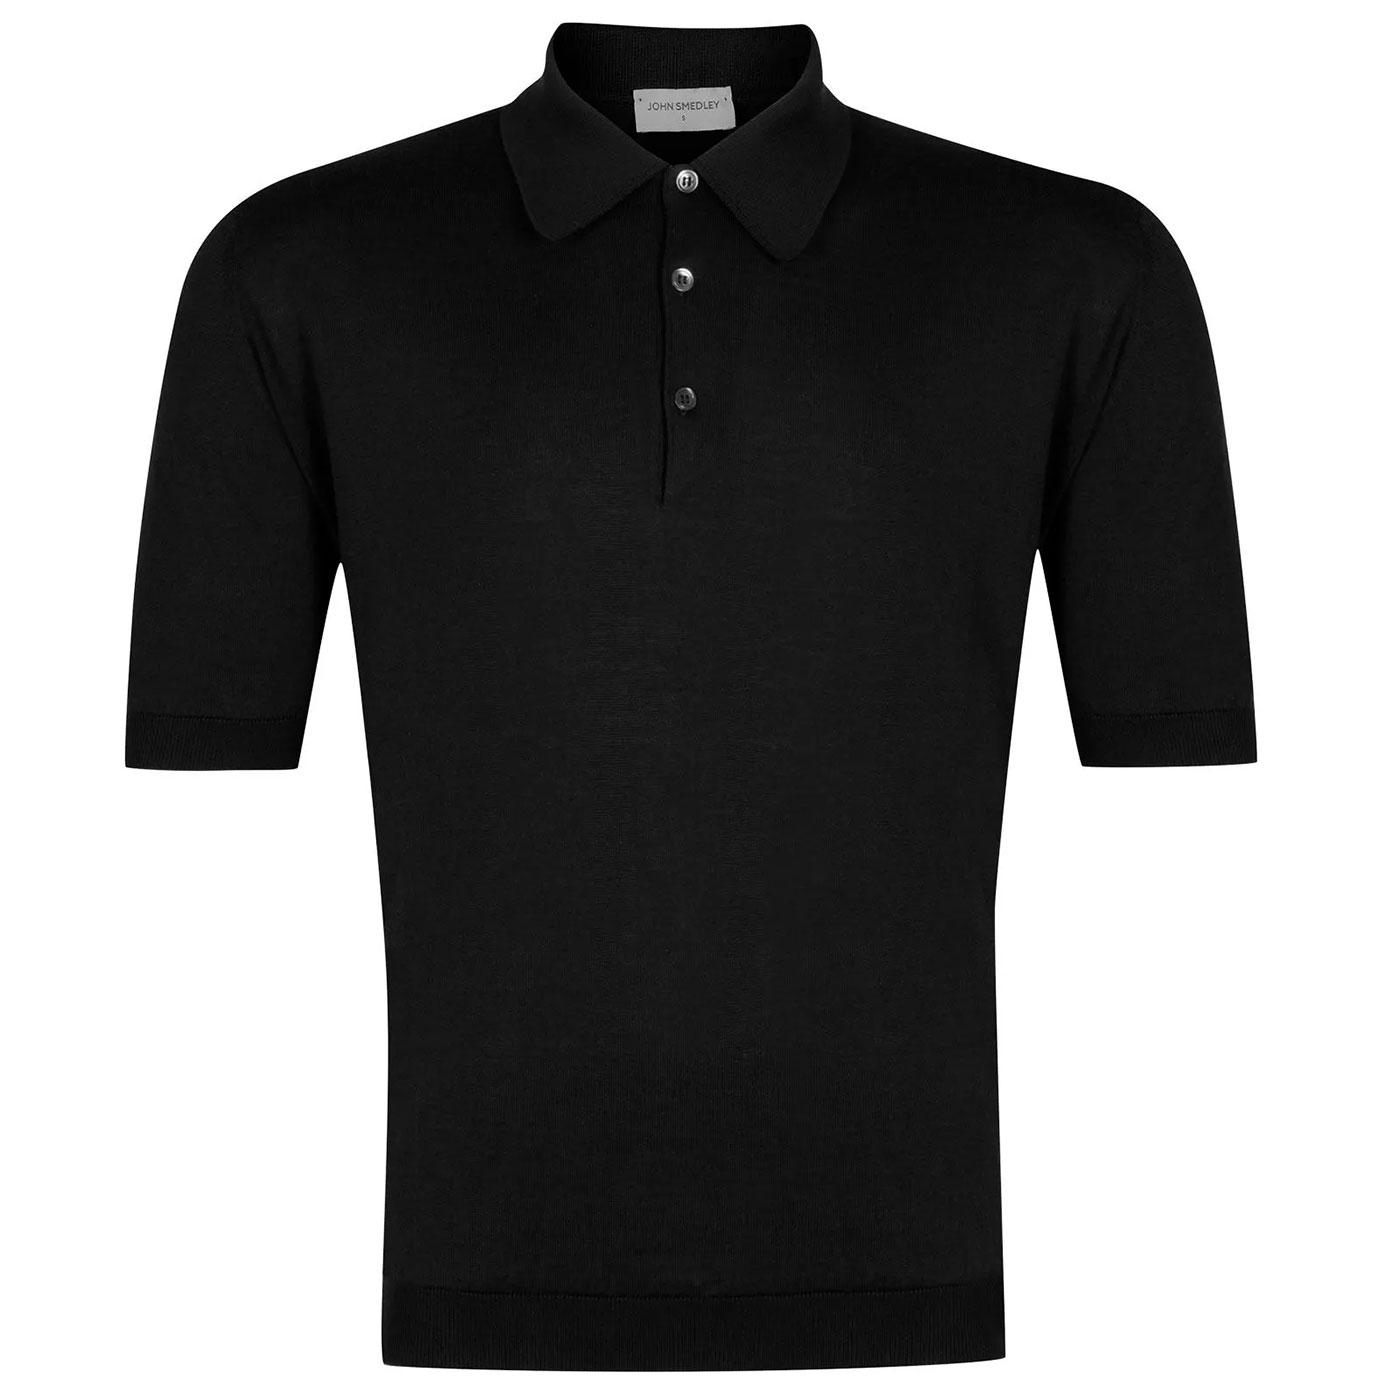 Isis JOHN SMEDLEY Mens Knitted 1960's Mod Polo (B)